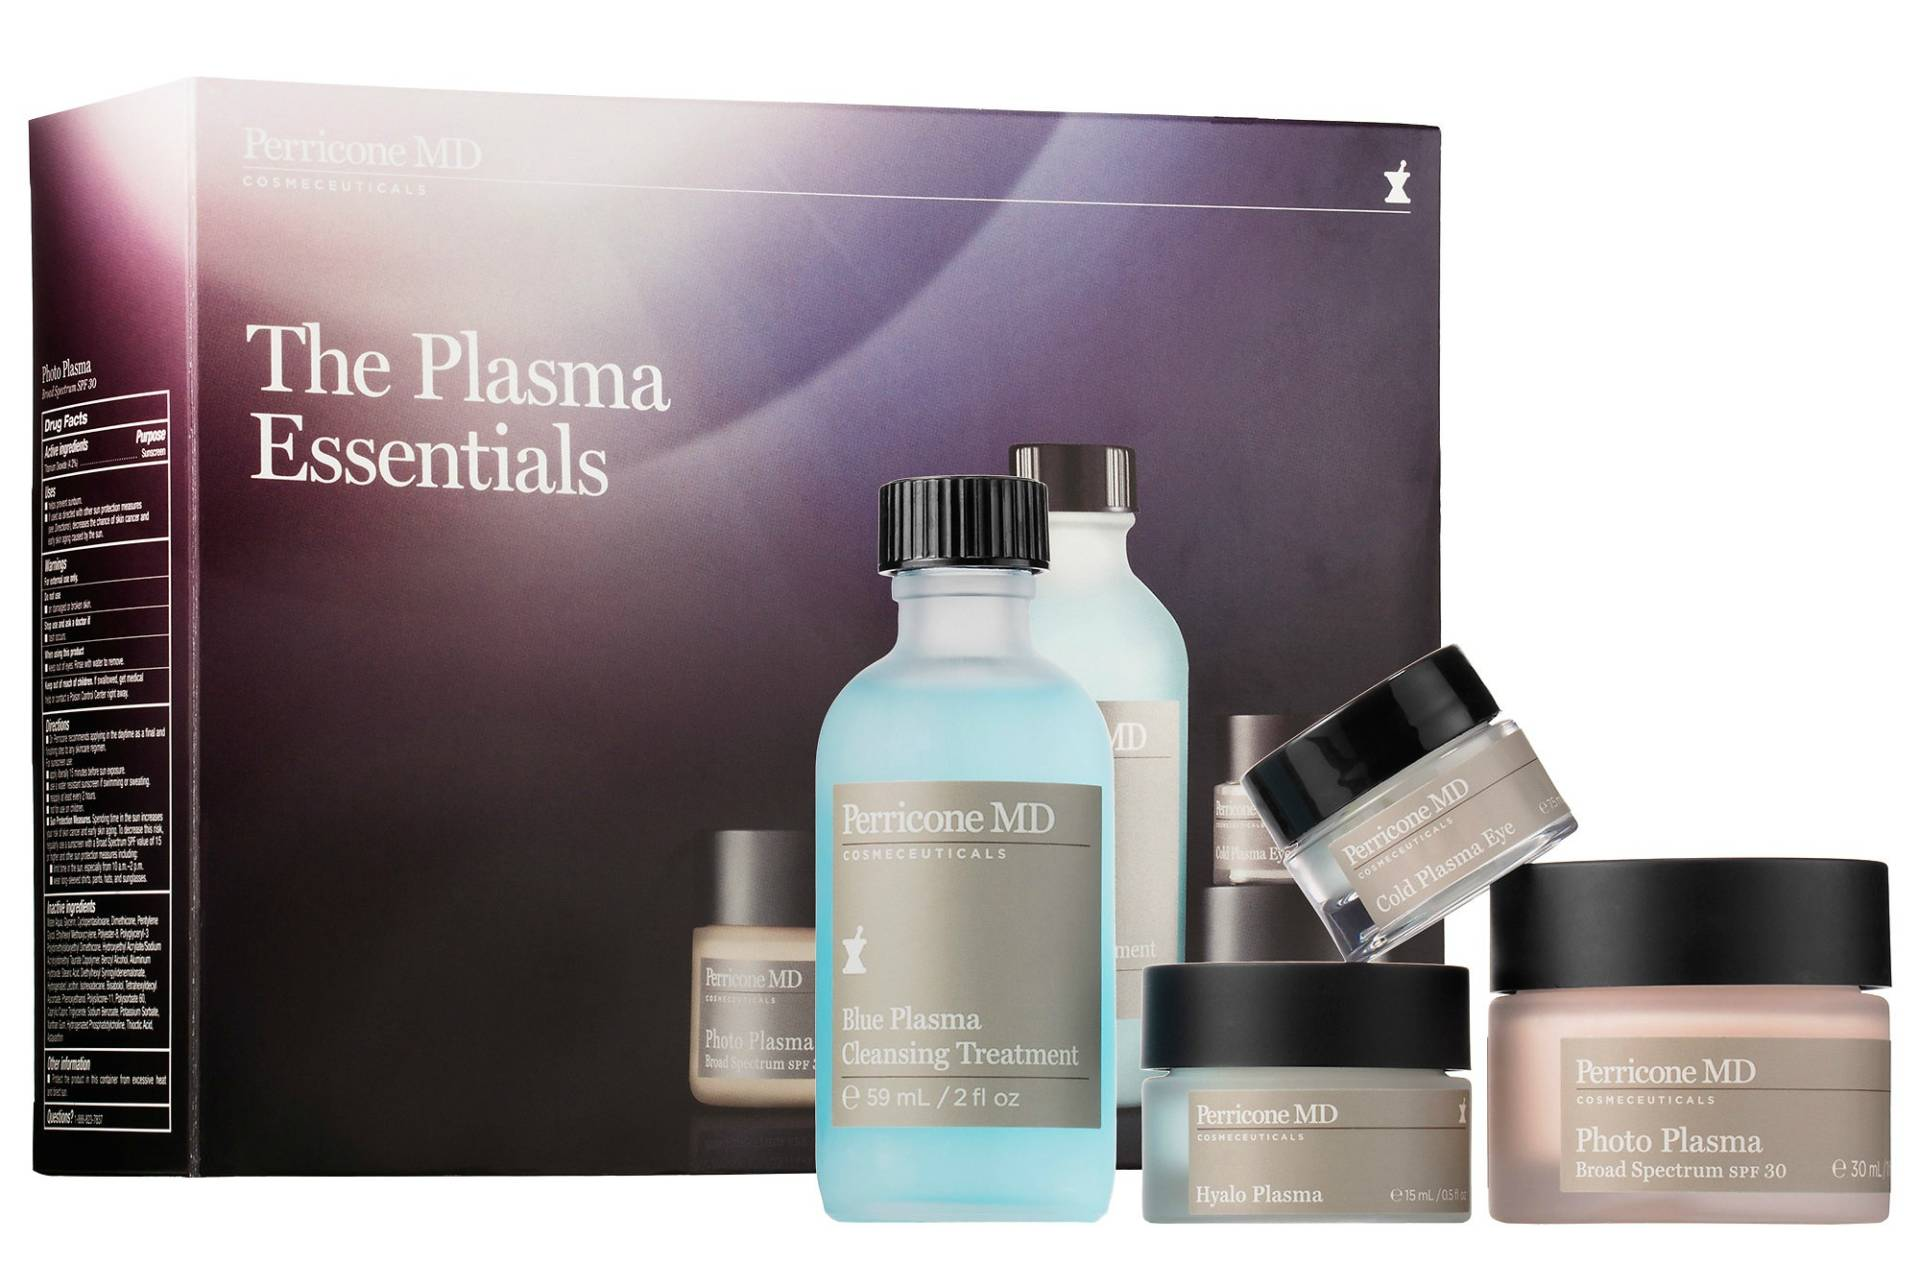 Perricone MD The Plasma Essentials mothers day gift guide inhautepursuit review